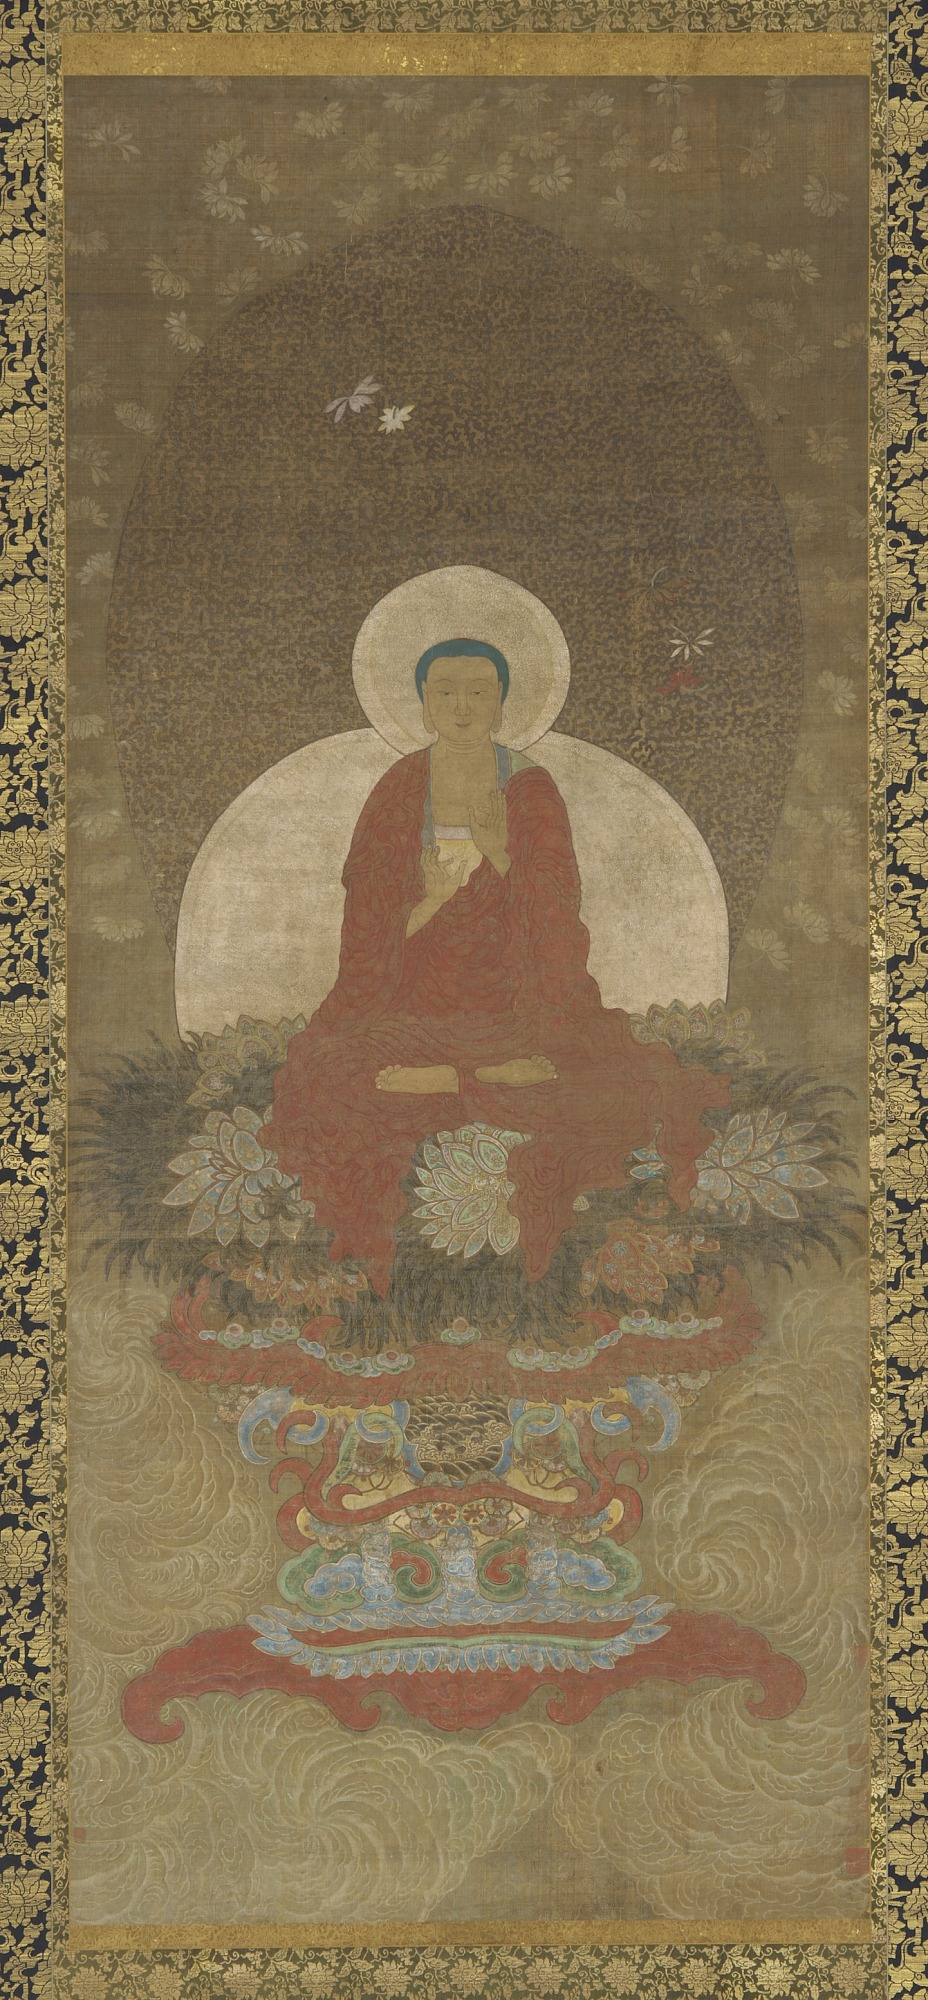 : Buddha Enthroned on a Mat of Kusa Grass